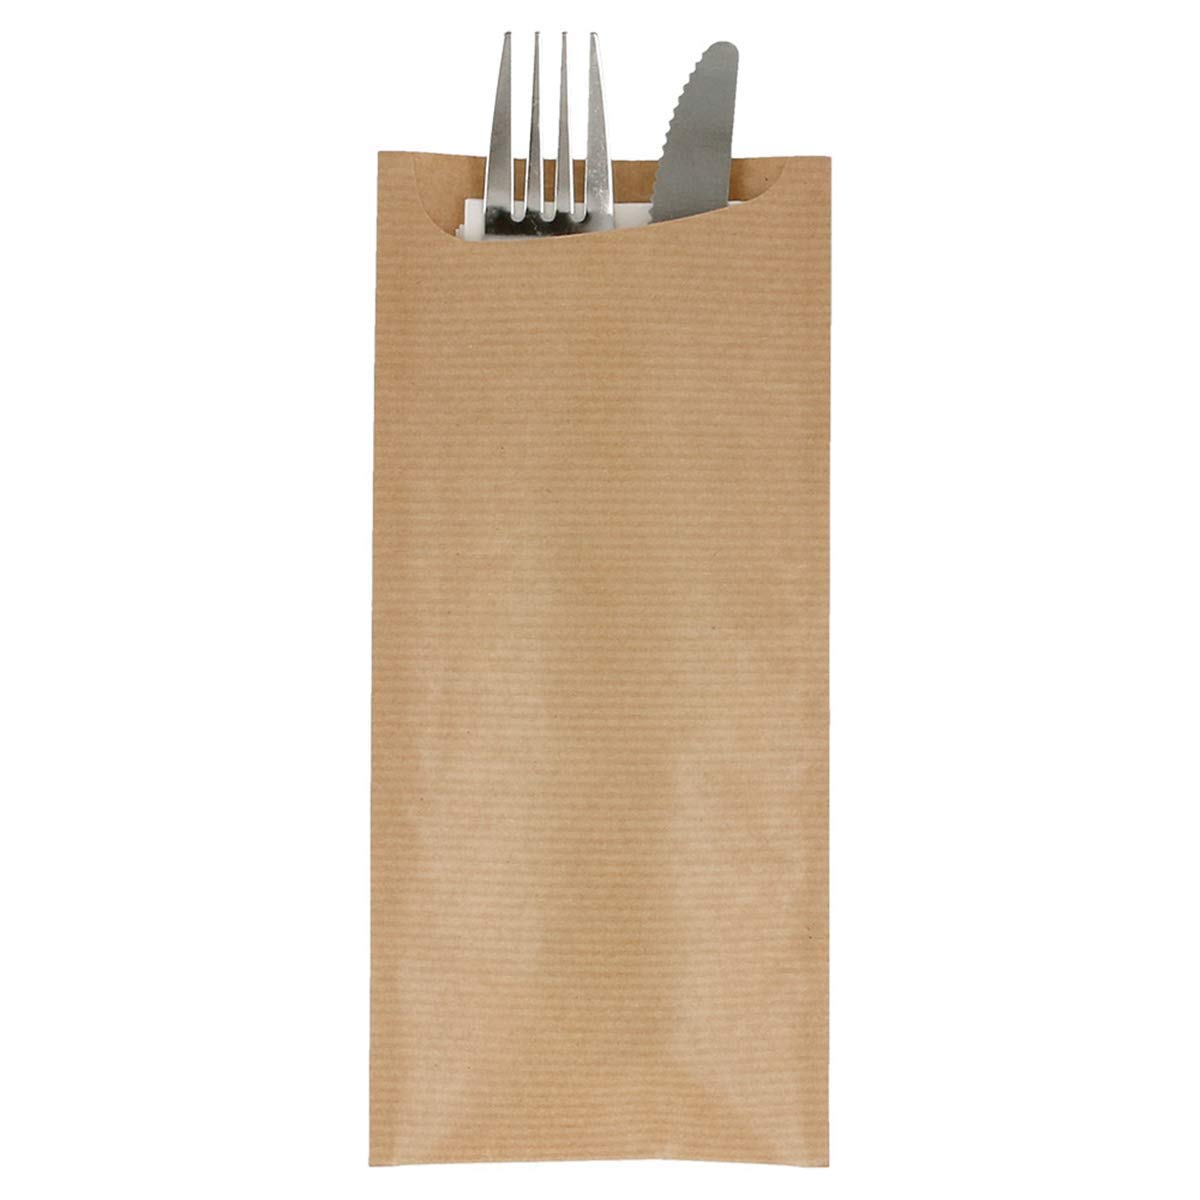 Cutlery Sachets White Napkin Just In Time